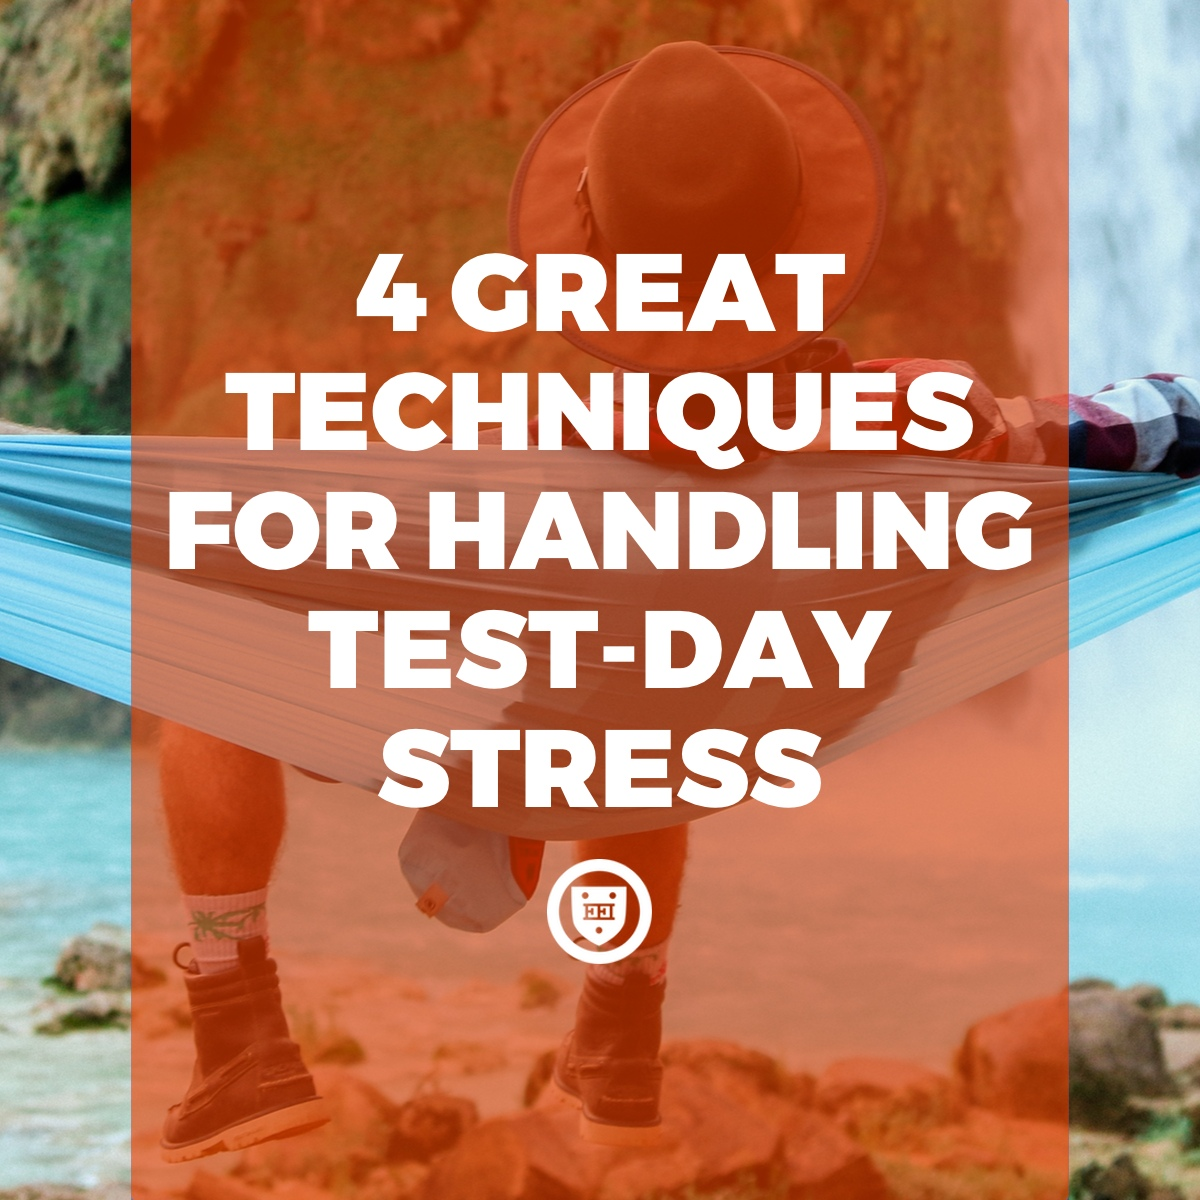 4 Great Techniques for Handling Test-Day Stress